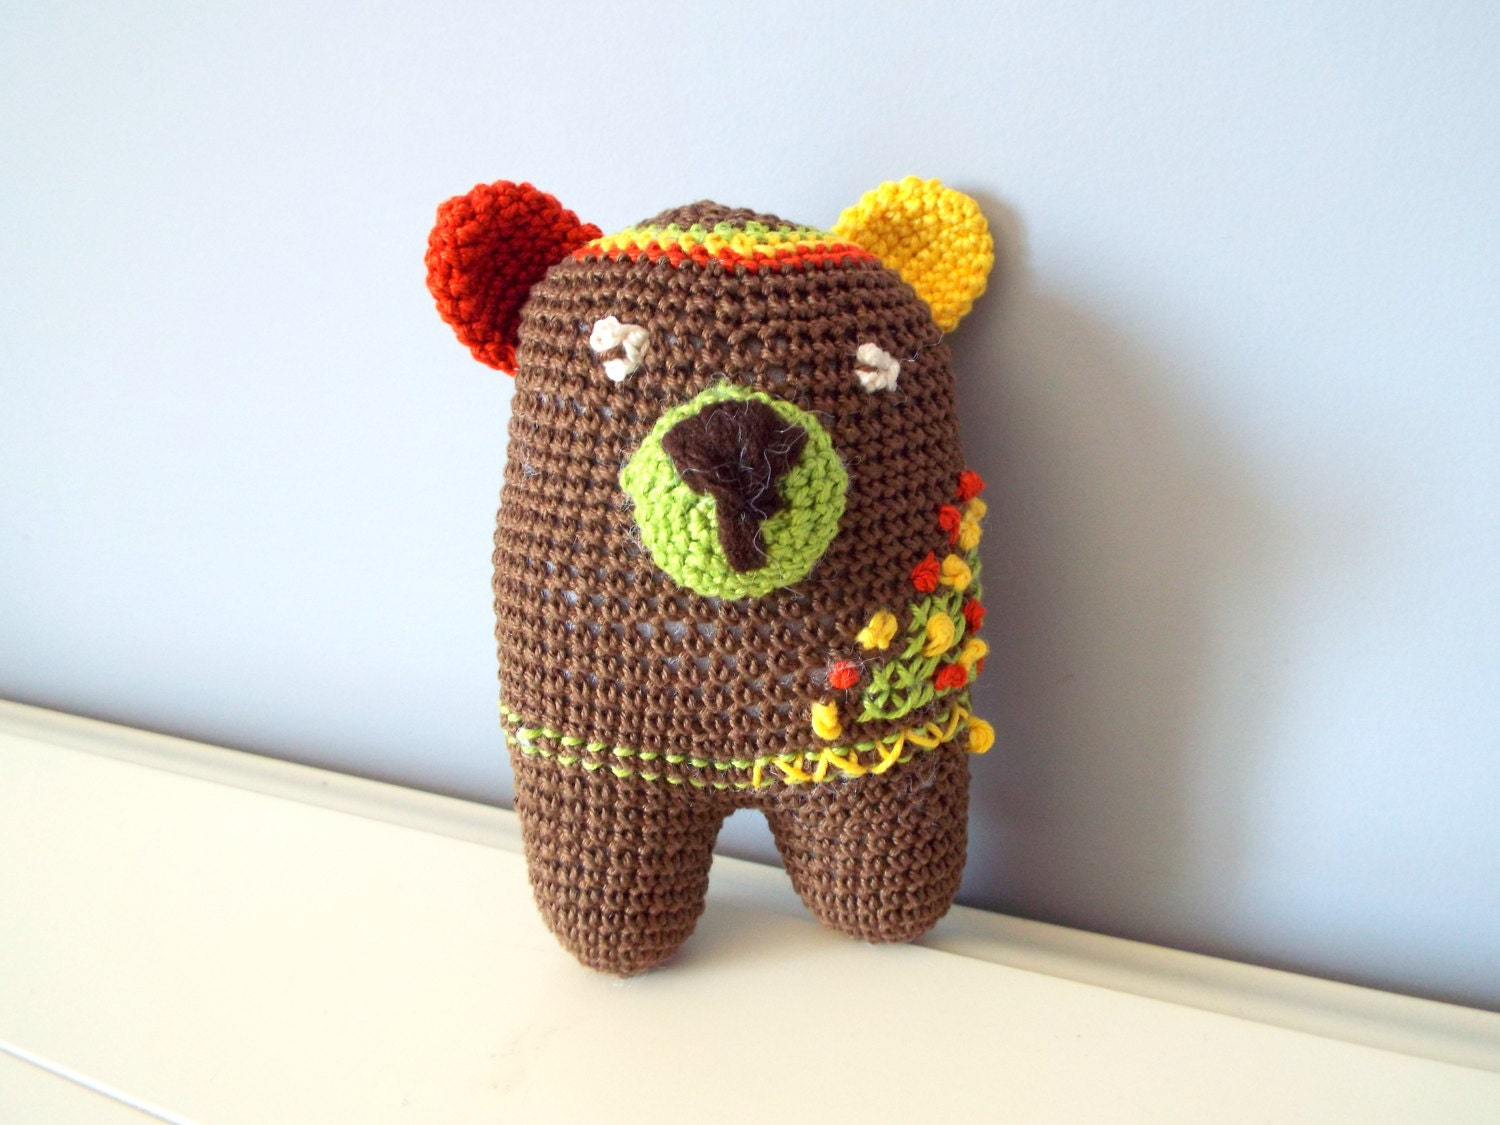 Amigurumi Little Teddy Bear : Crochet small teddy bear Amigurumi Teddy Home decor Kids Baby